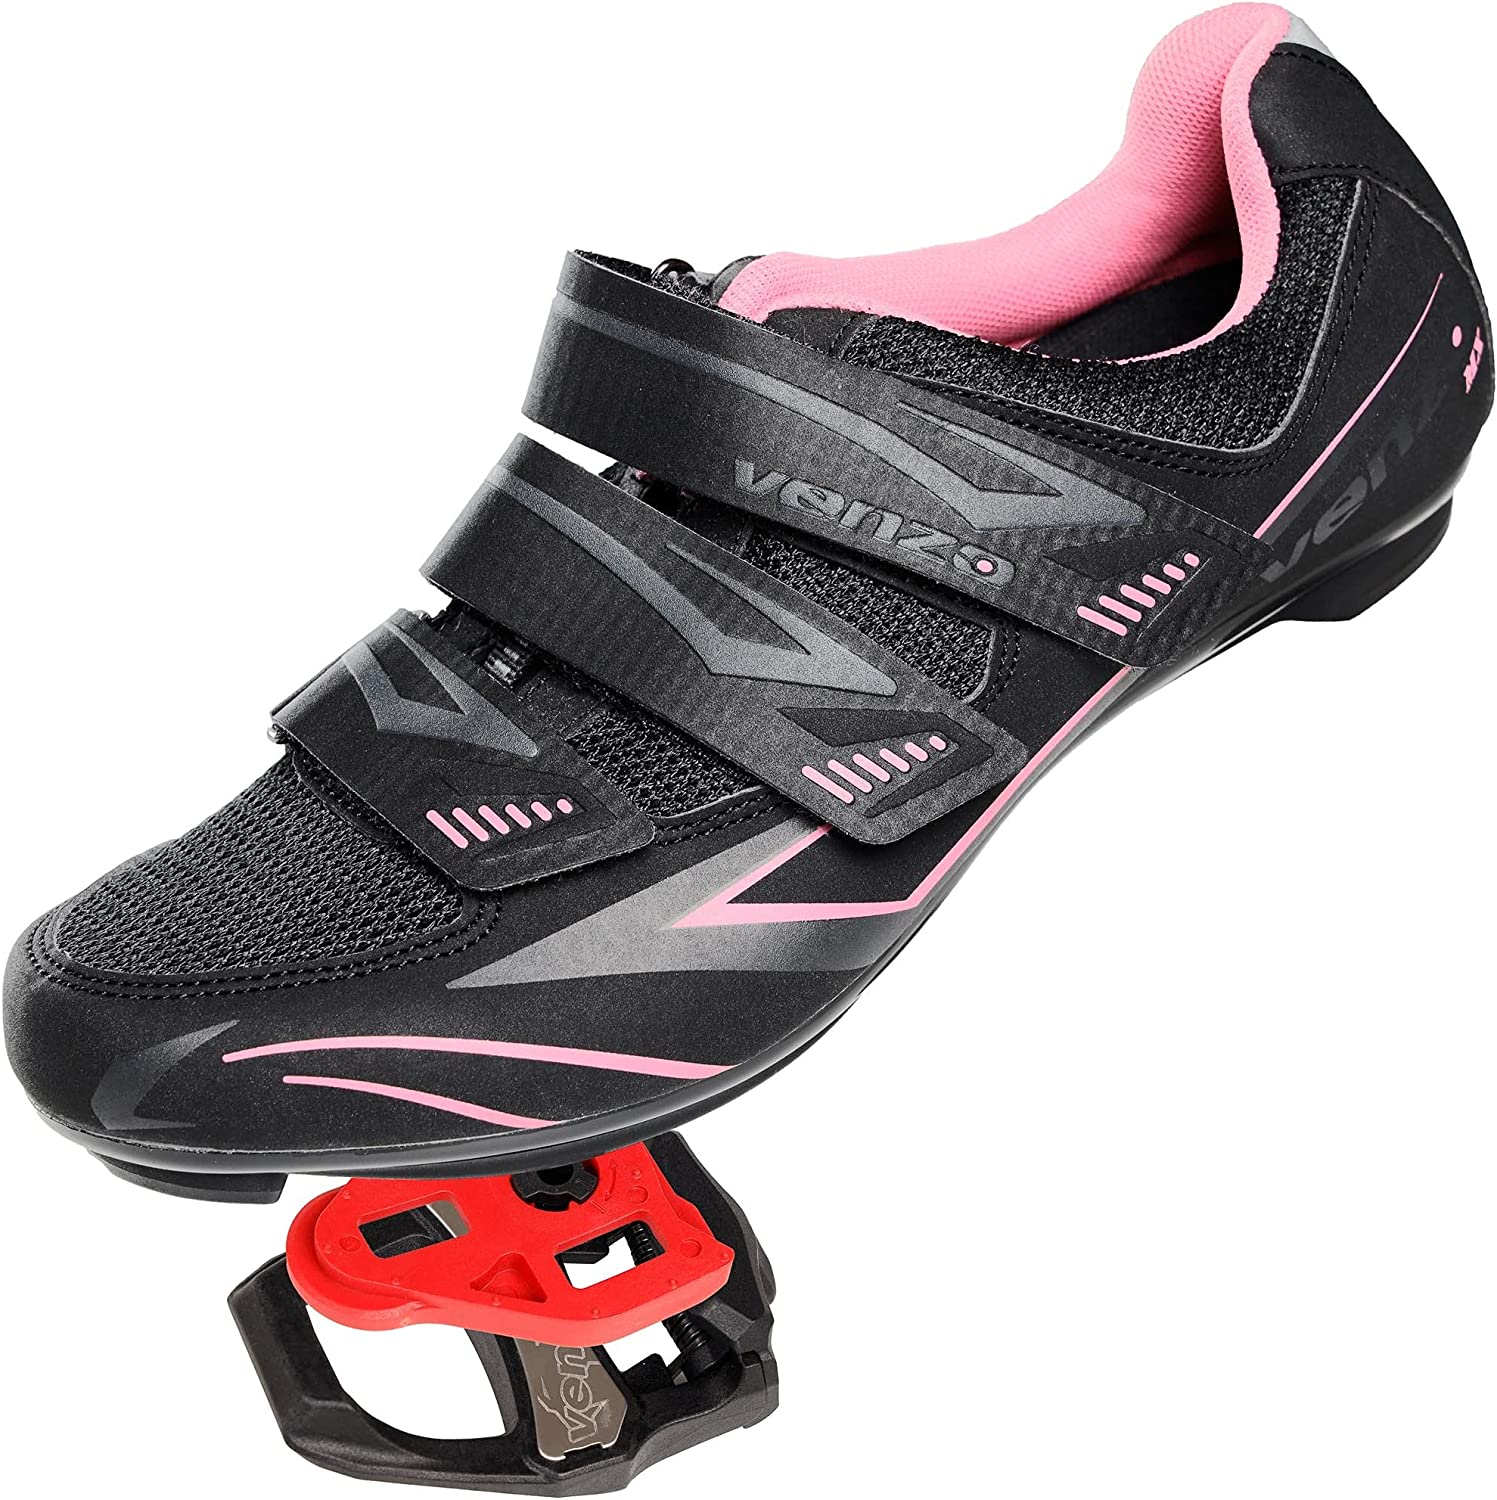 Venzo Bicycle Women's Road Cycling Shoes Riding Super beauty product restock quality Mail order cheap top with - Bike